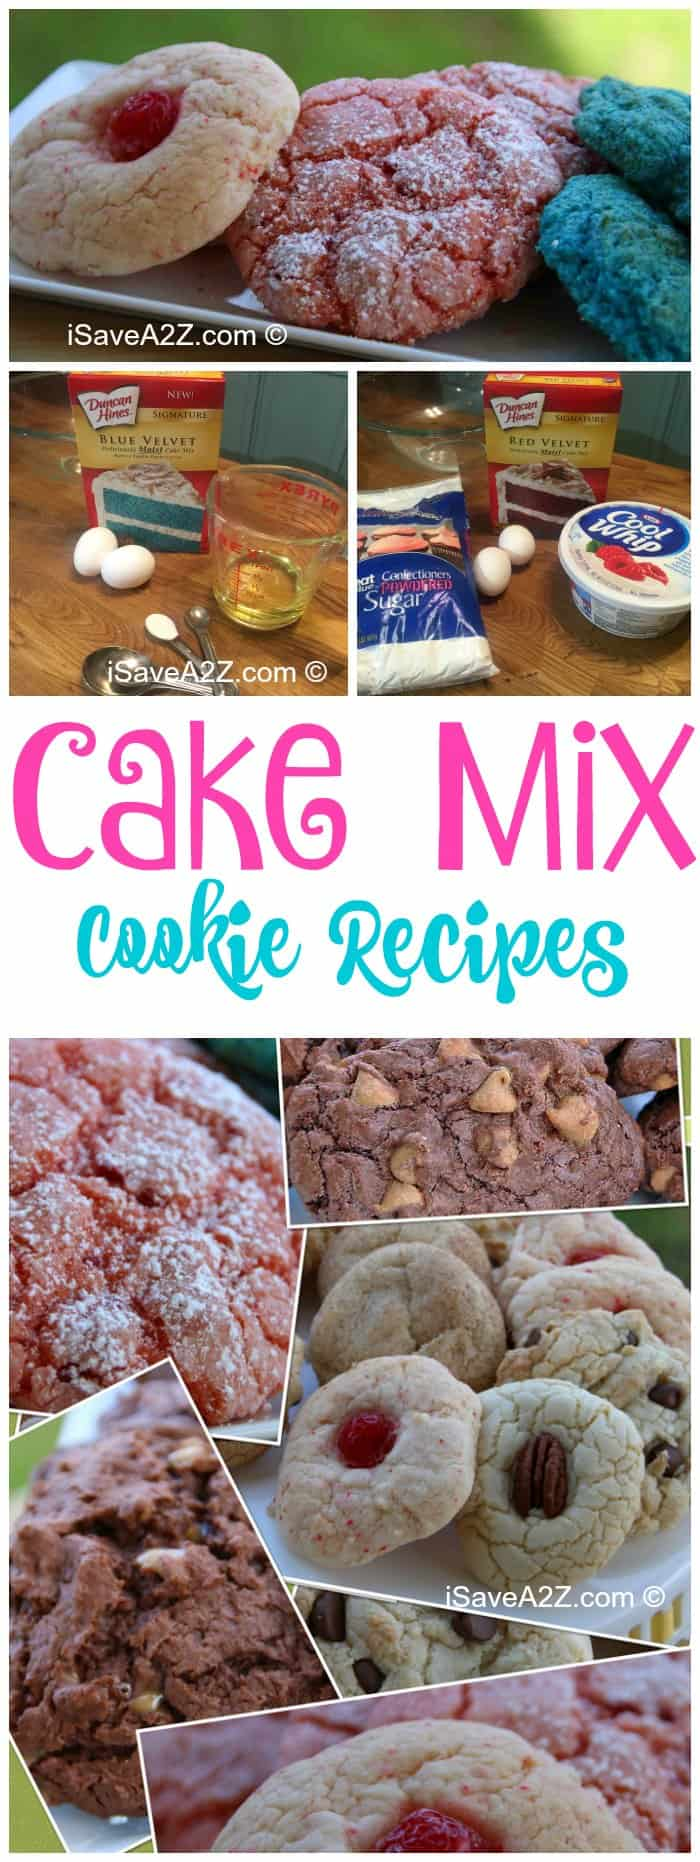 Top 45 Cake Mix Cookie Recipes